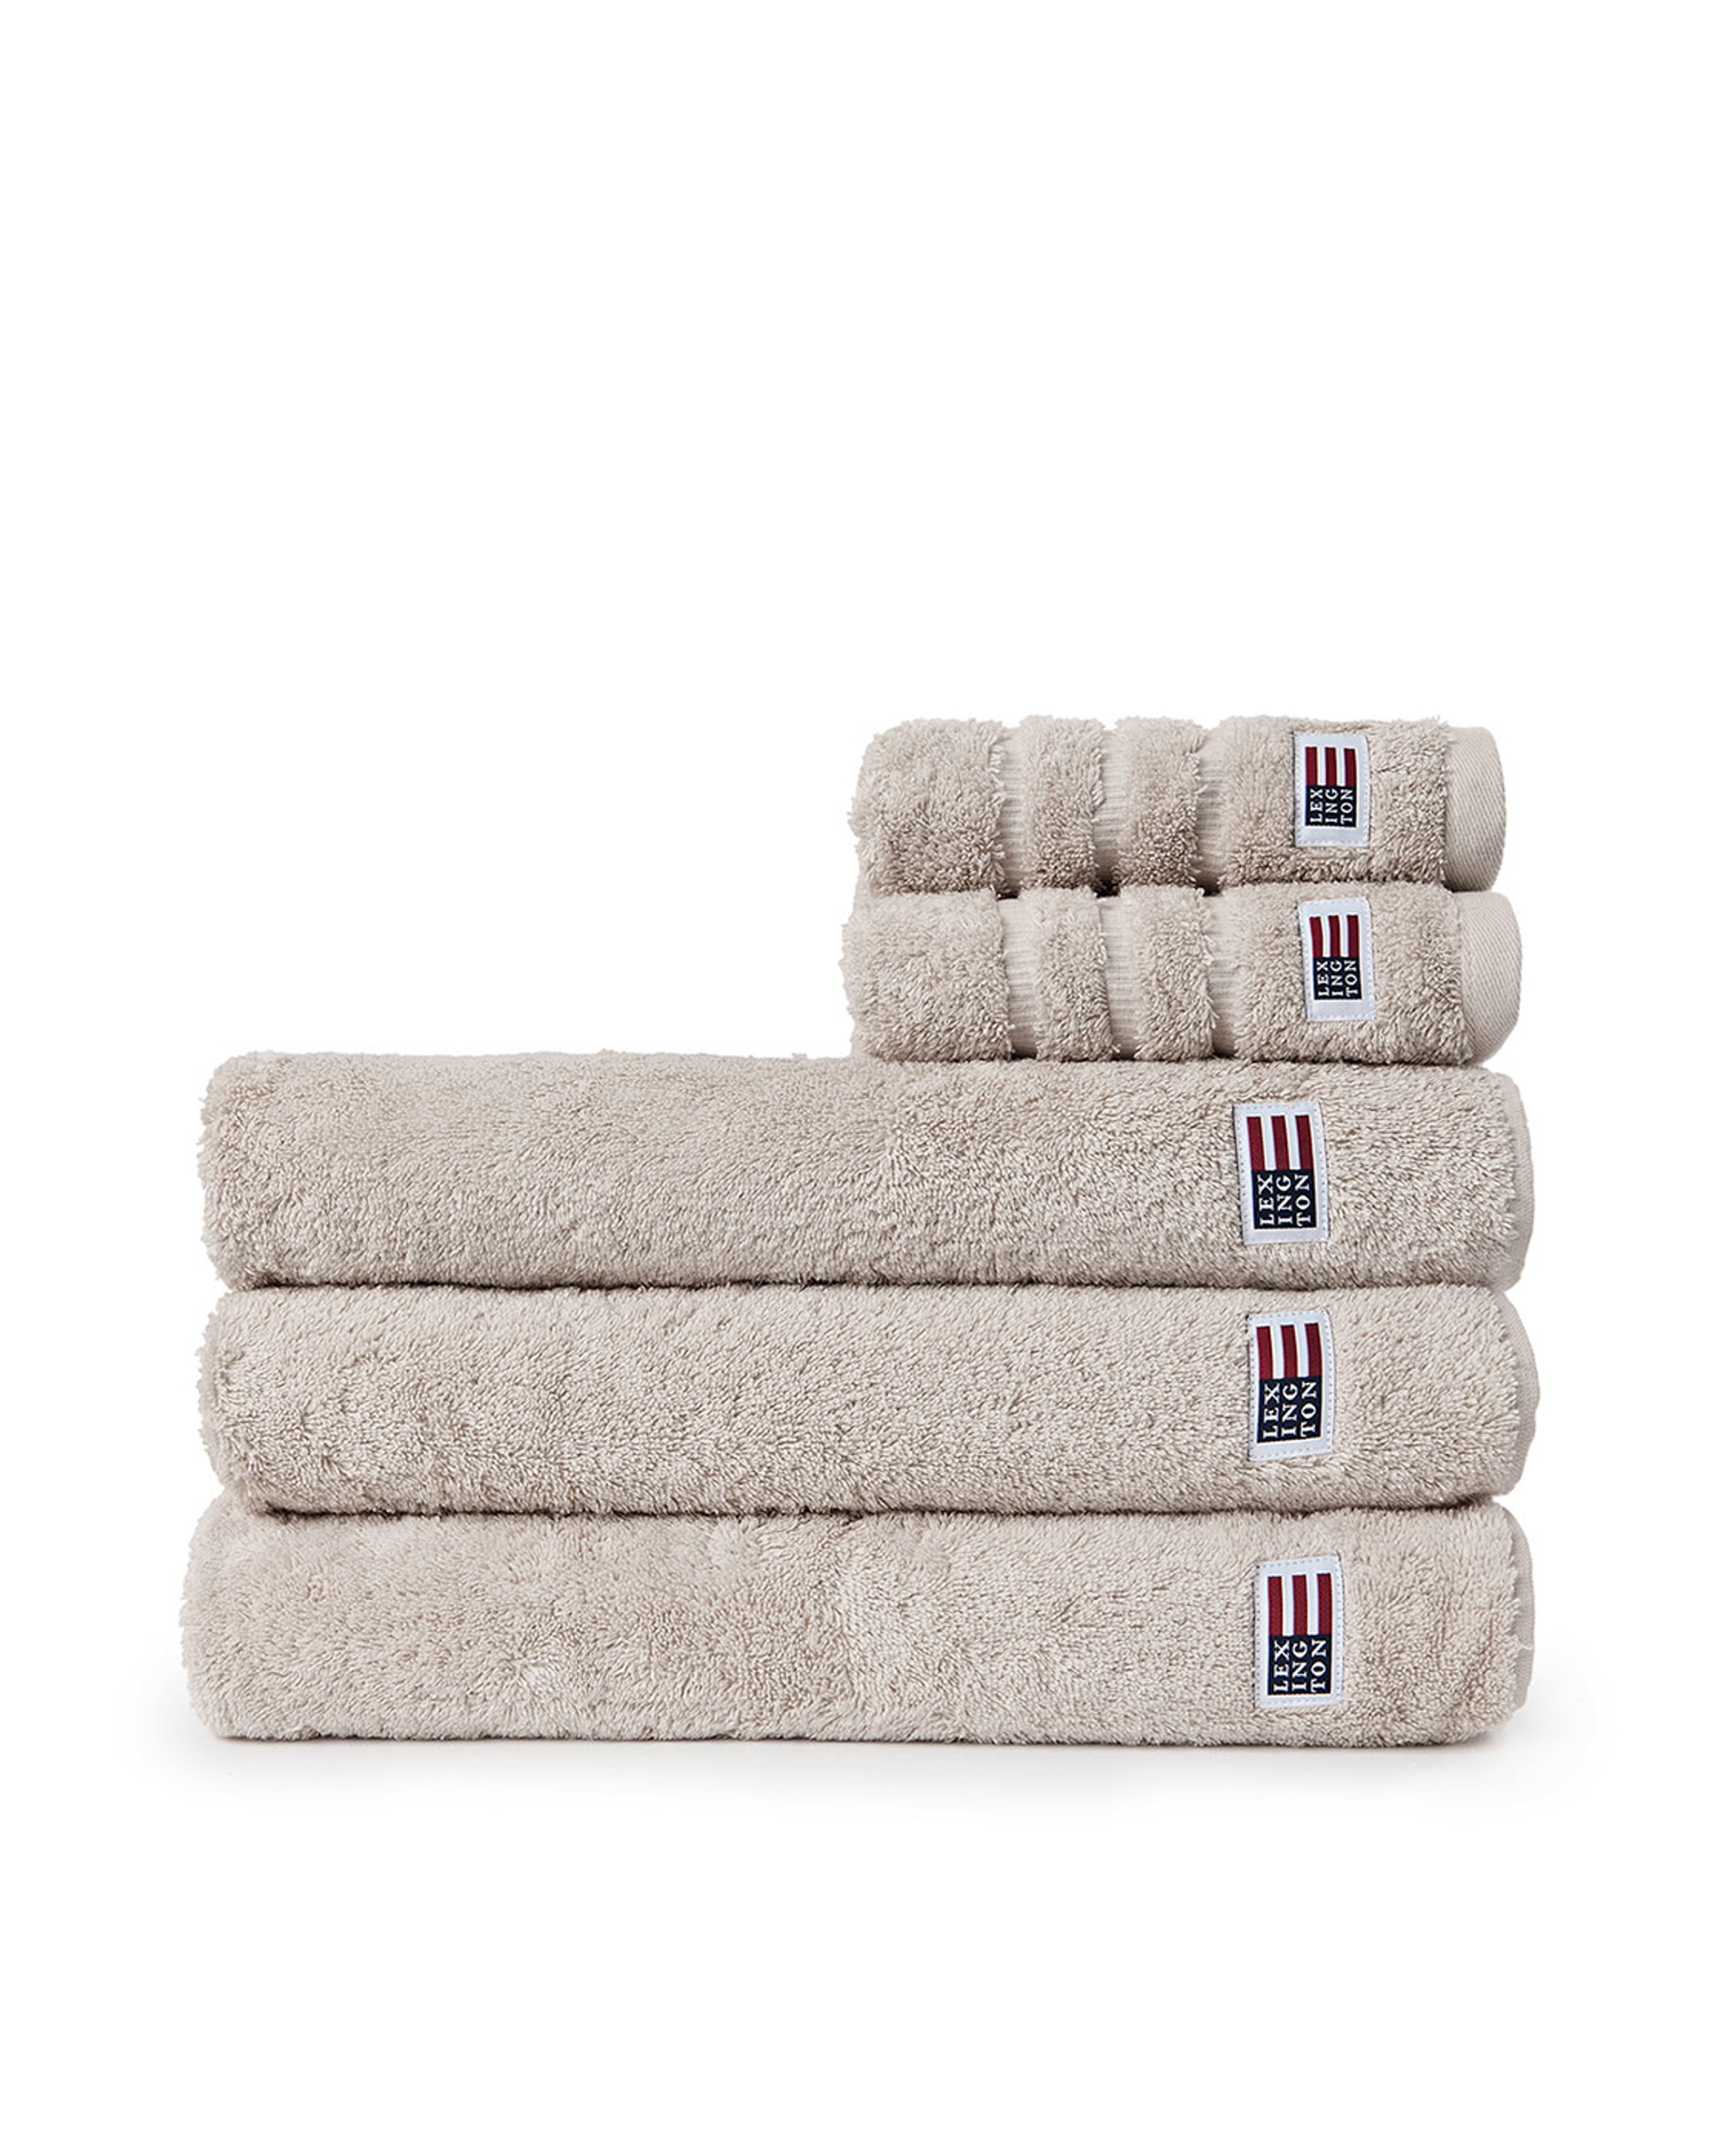 Icons Original Towel Moonbeam